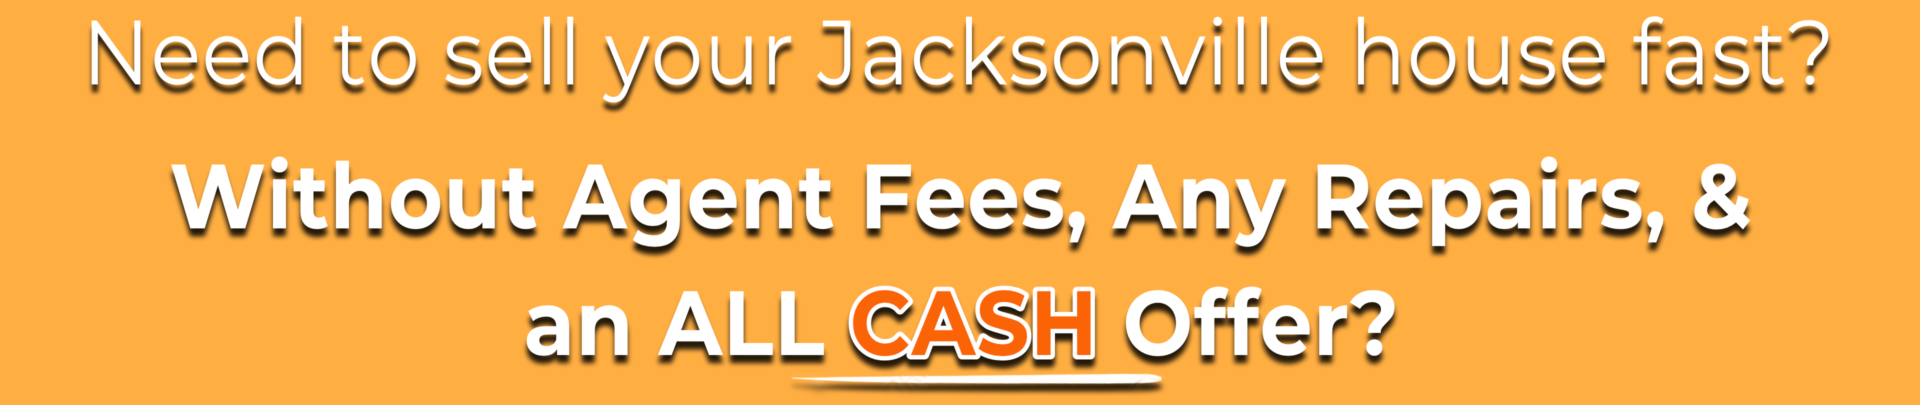 Sell My House Fast Jacksonville   We Buy Houses Jacksonville   Cash for Houses Jacksonville